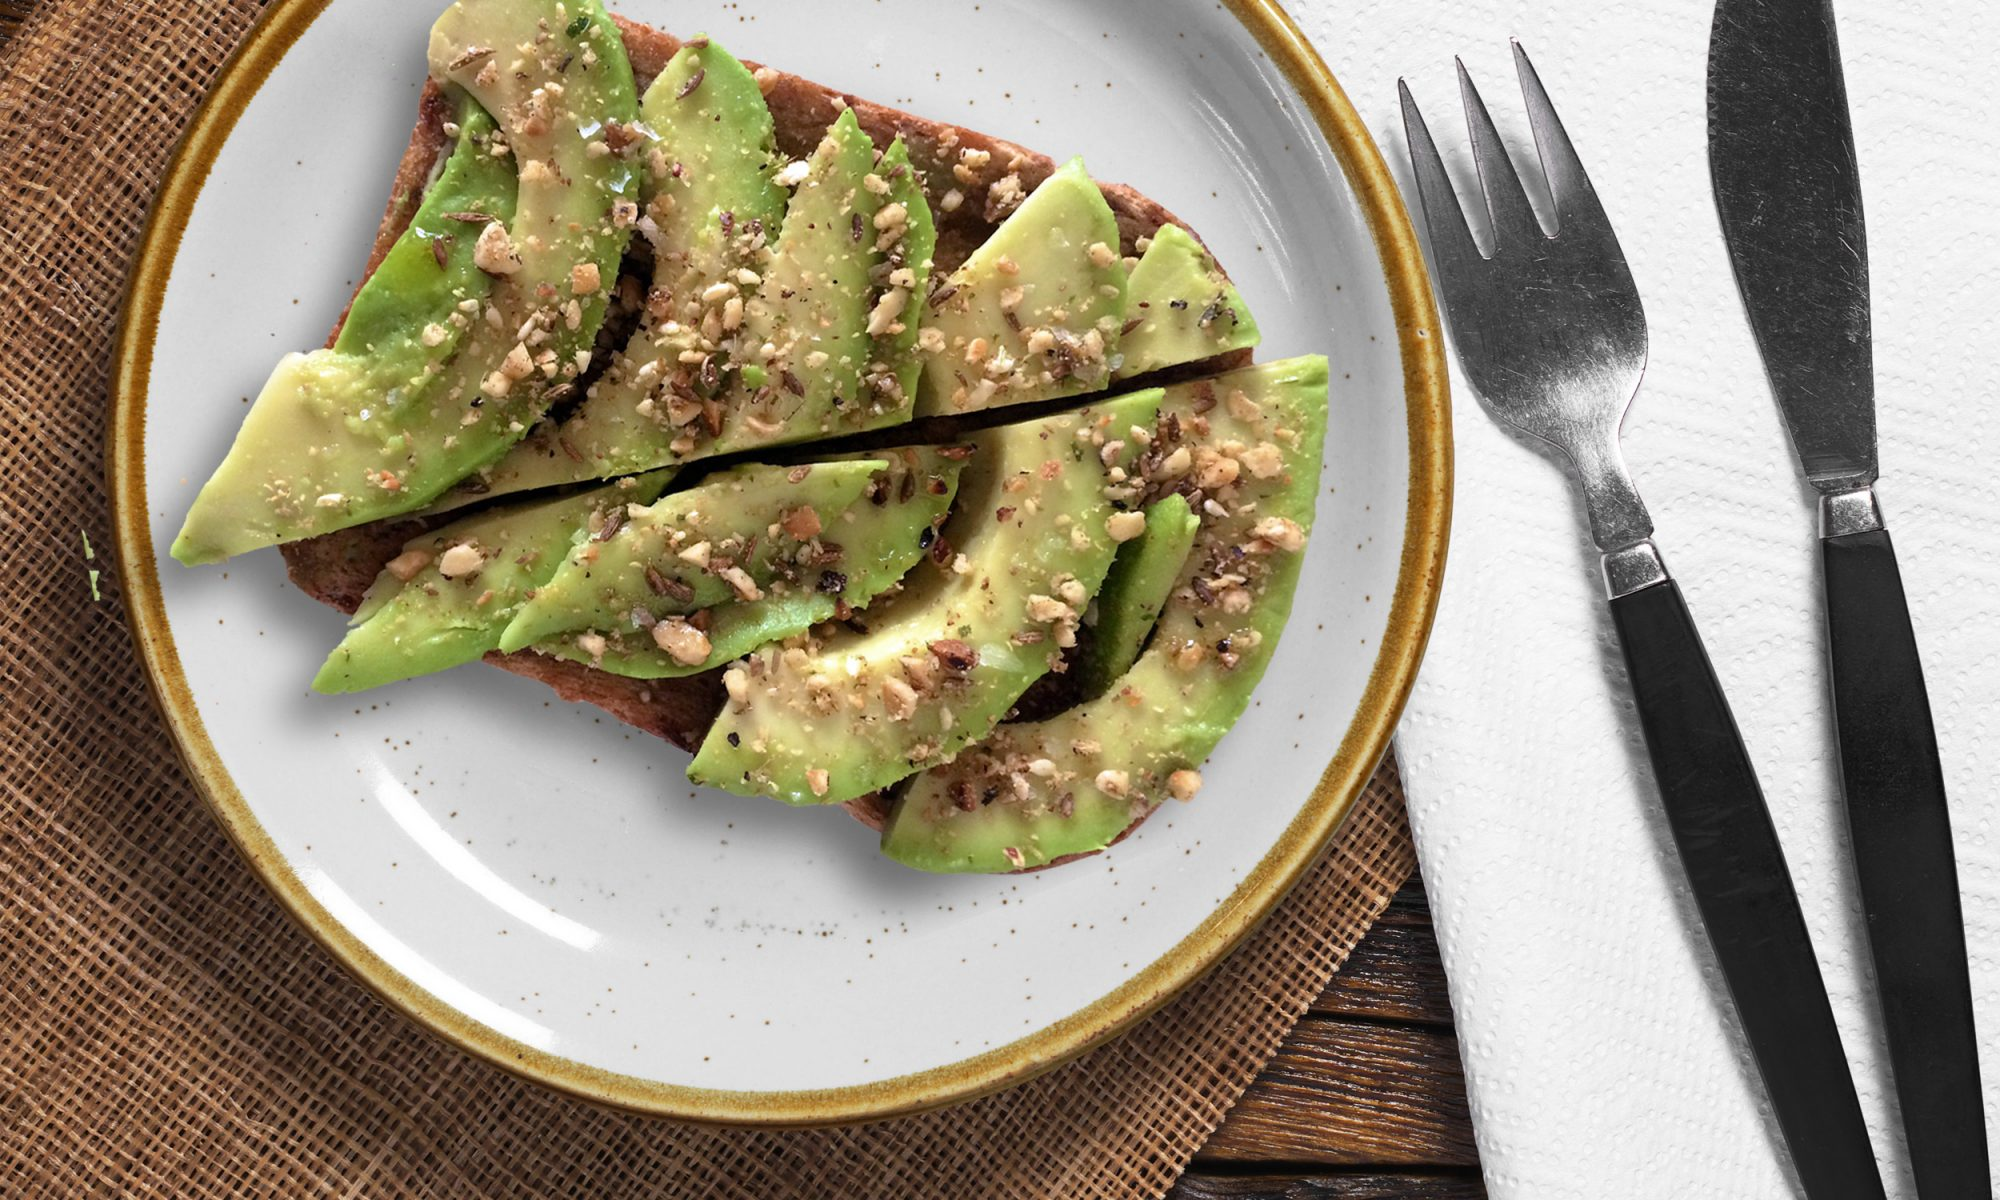 Your Avocado Toast Needs Dukkah on It